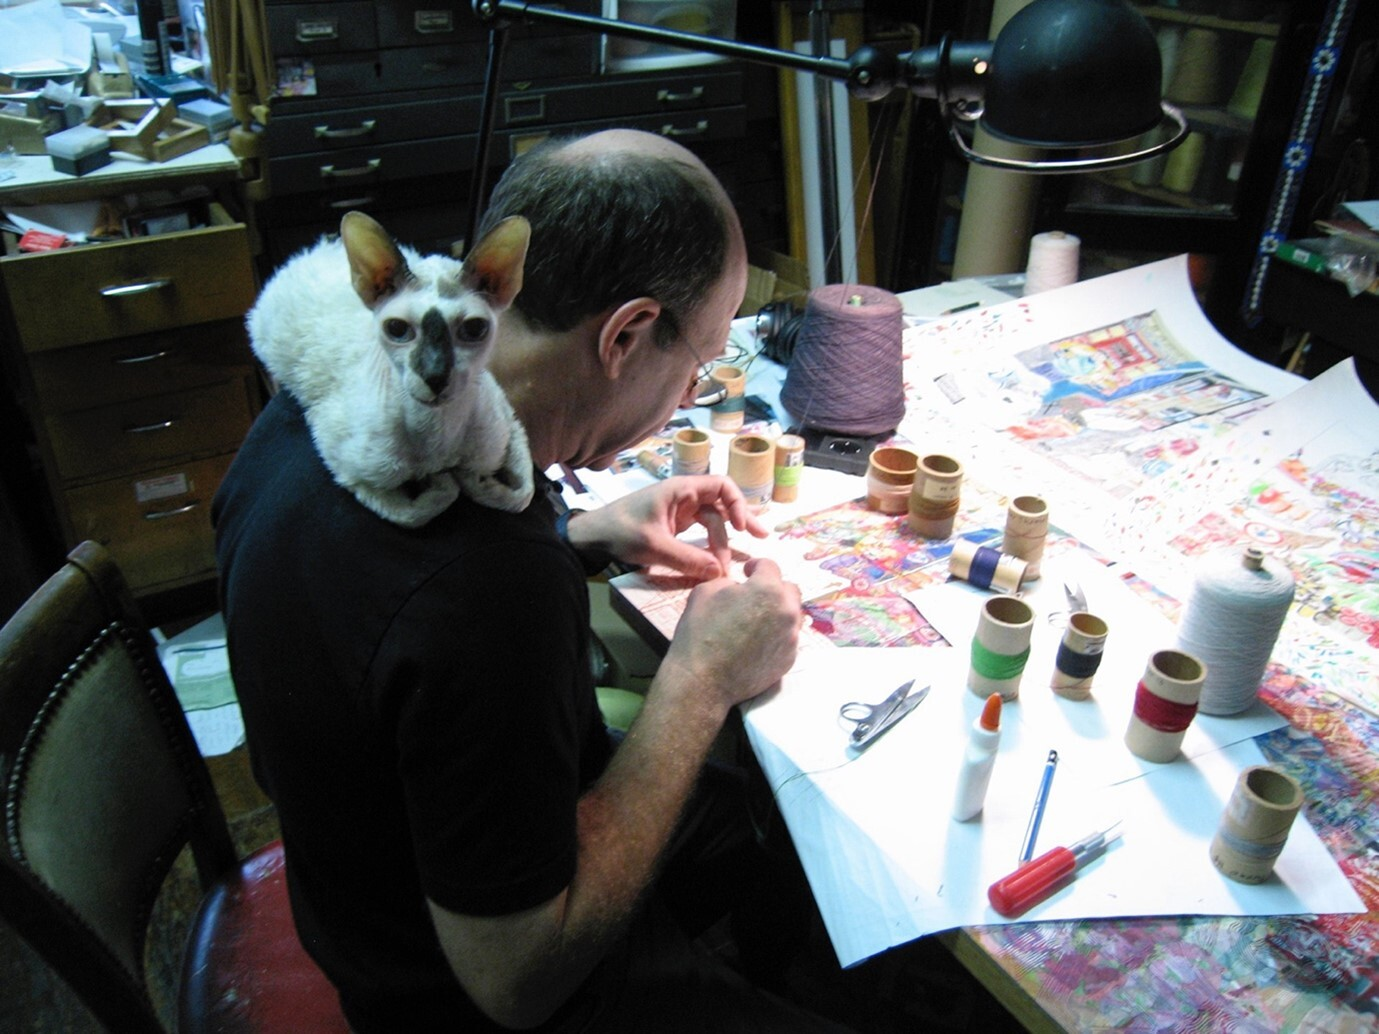 Robert Forman in his studio